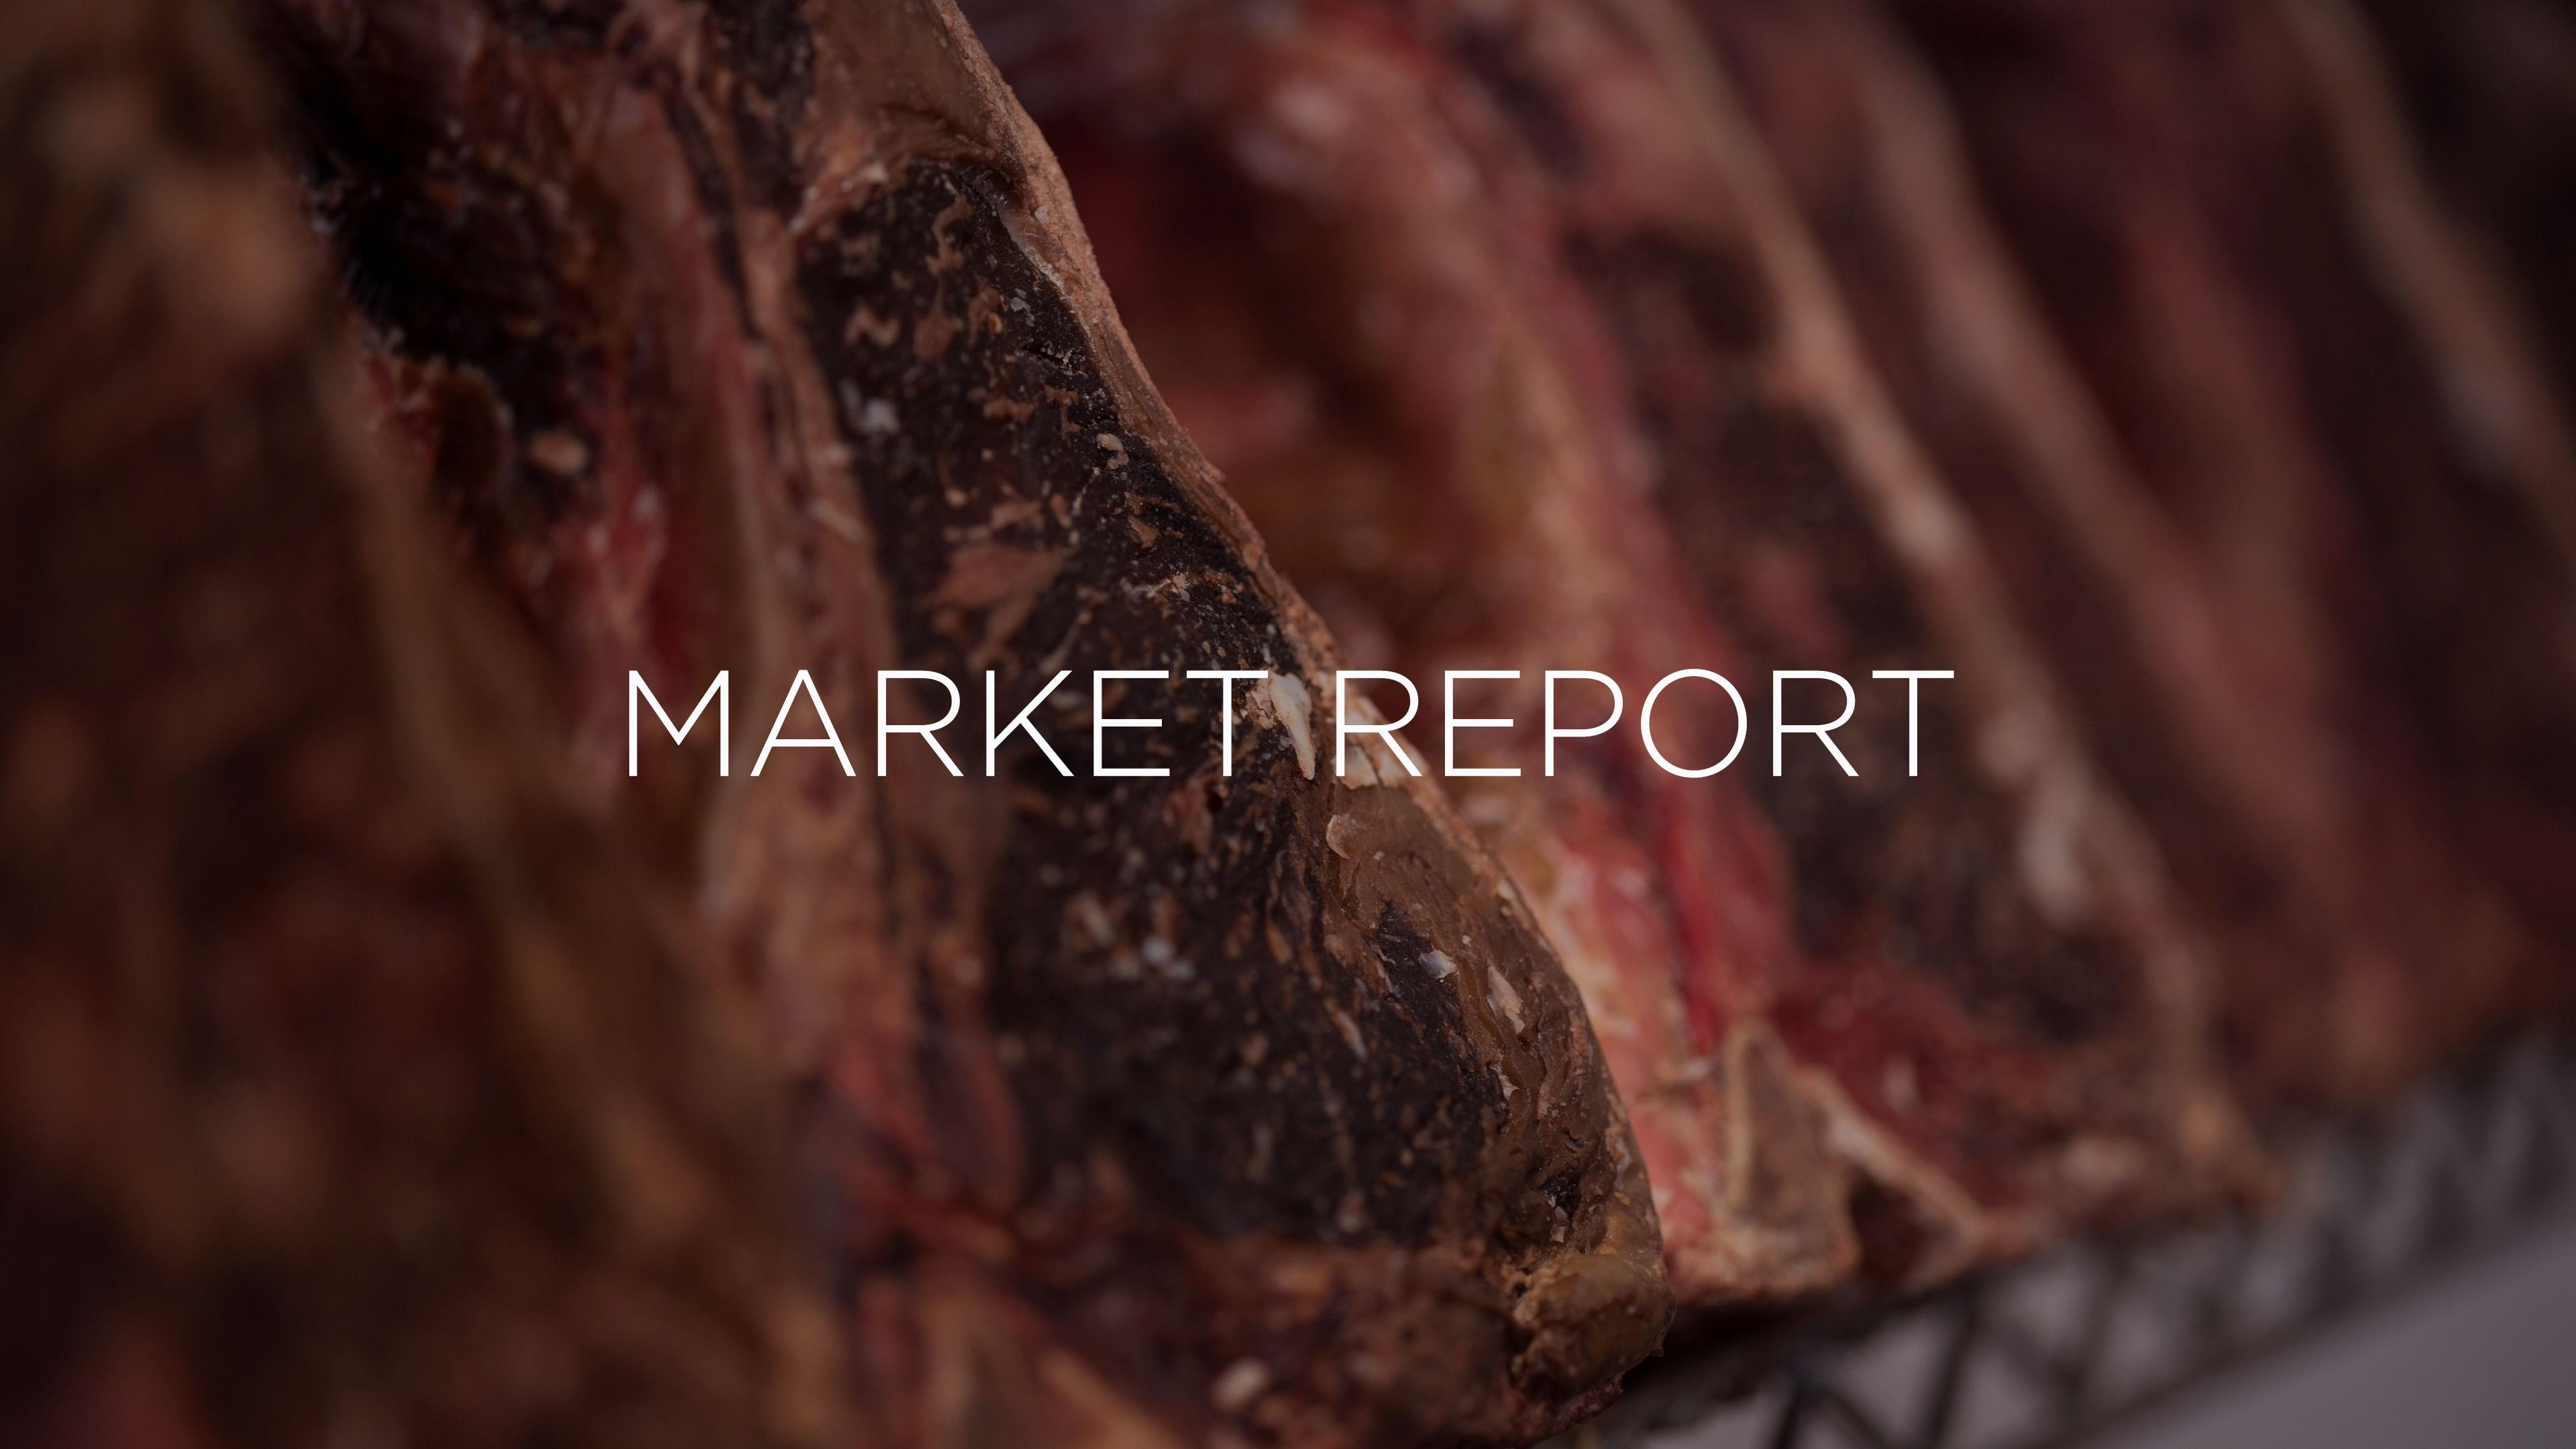 Market Report for February 2019